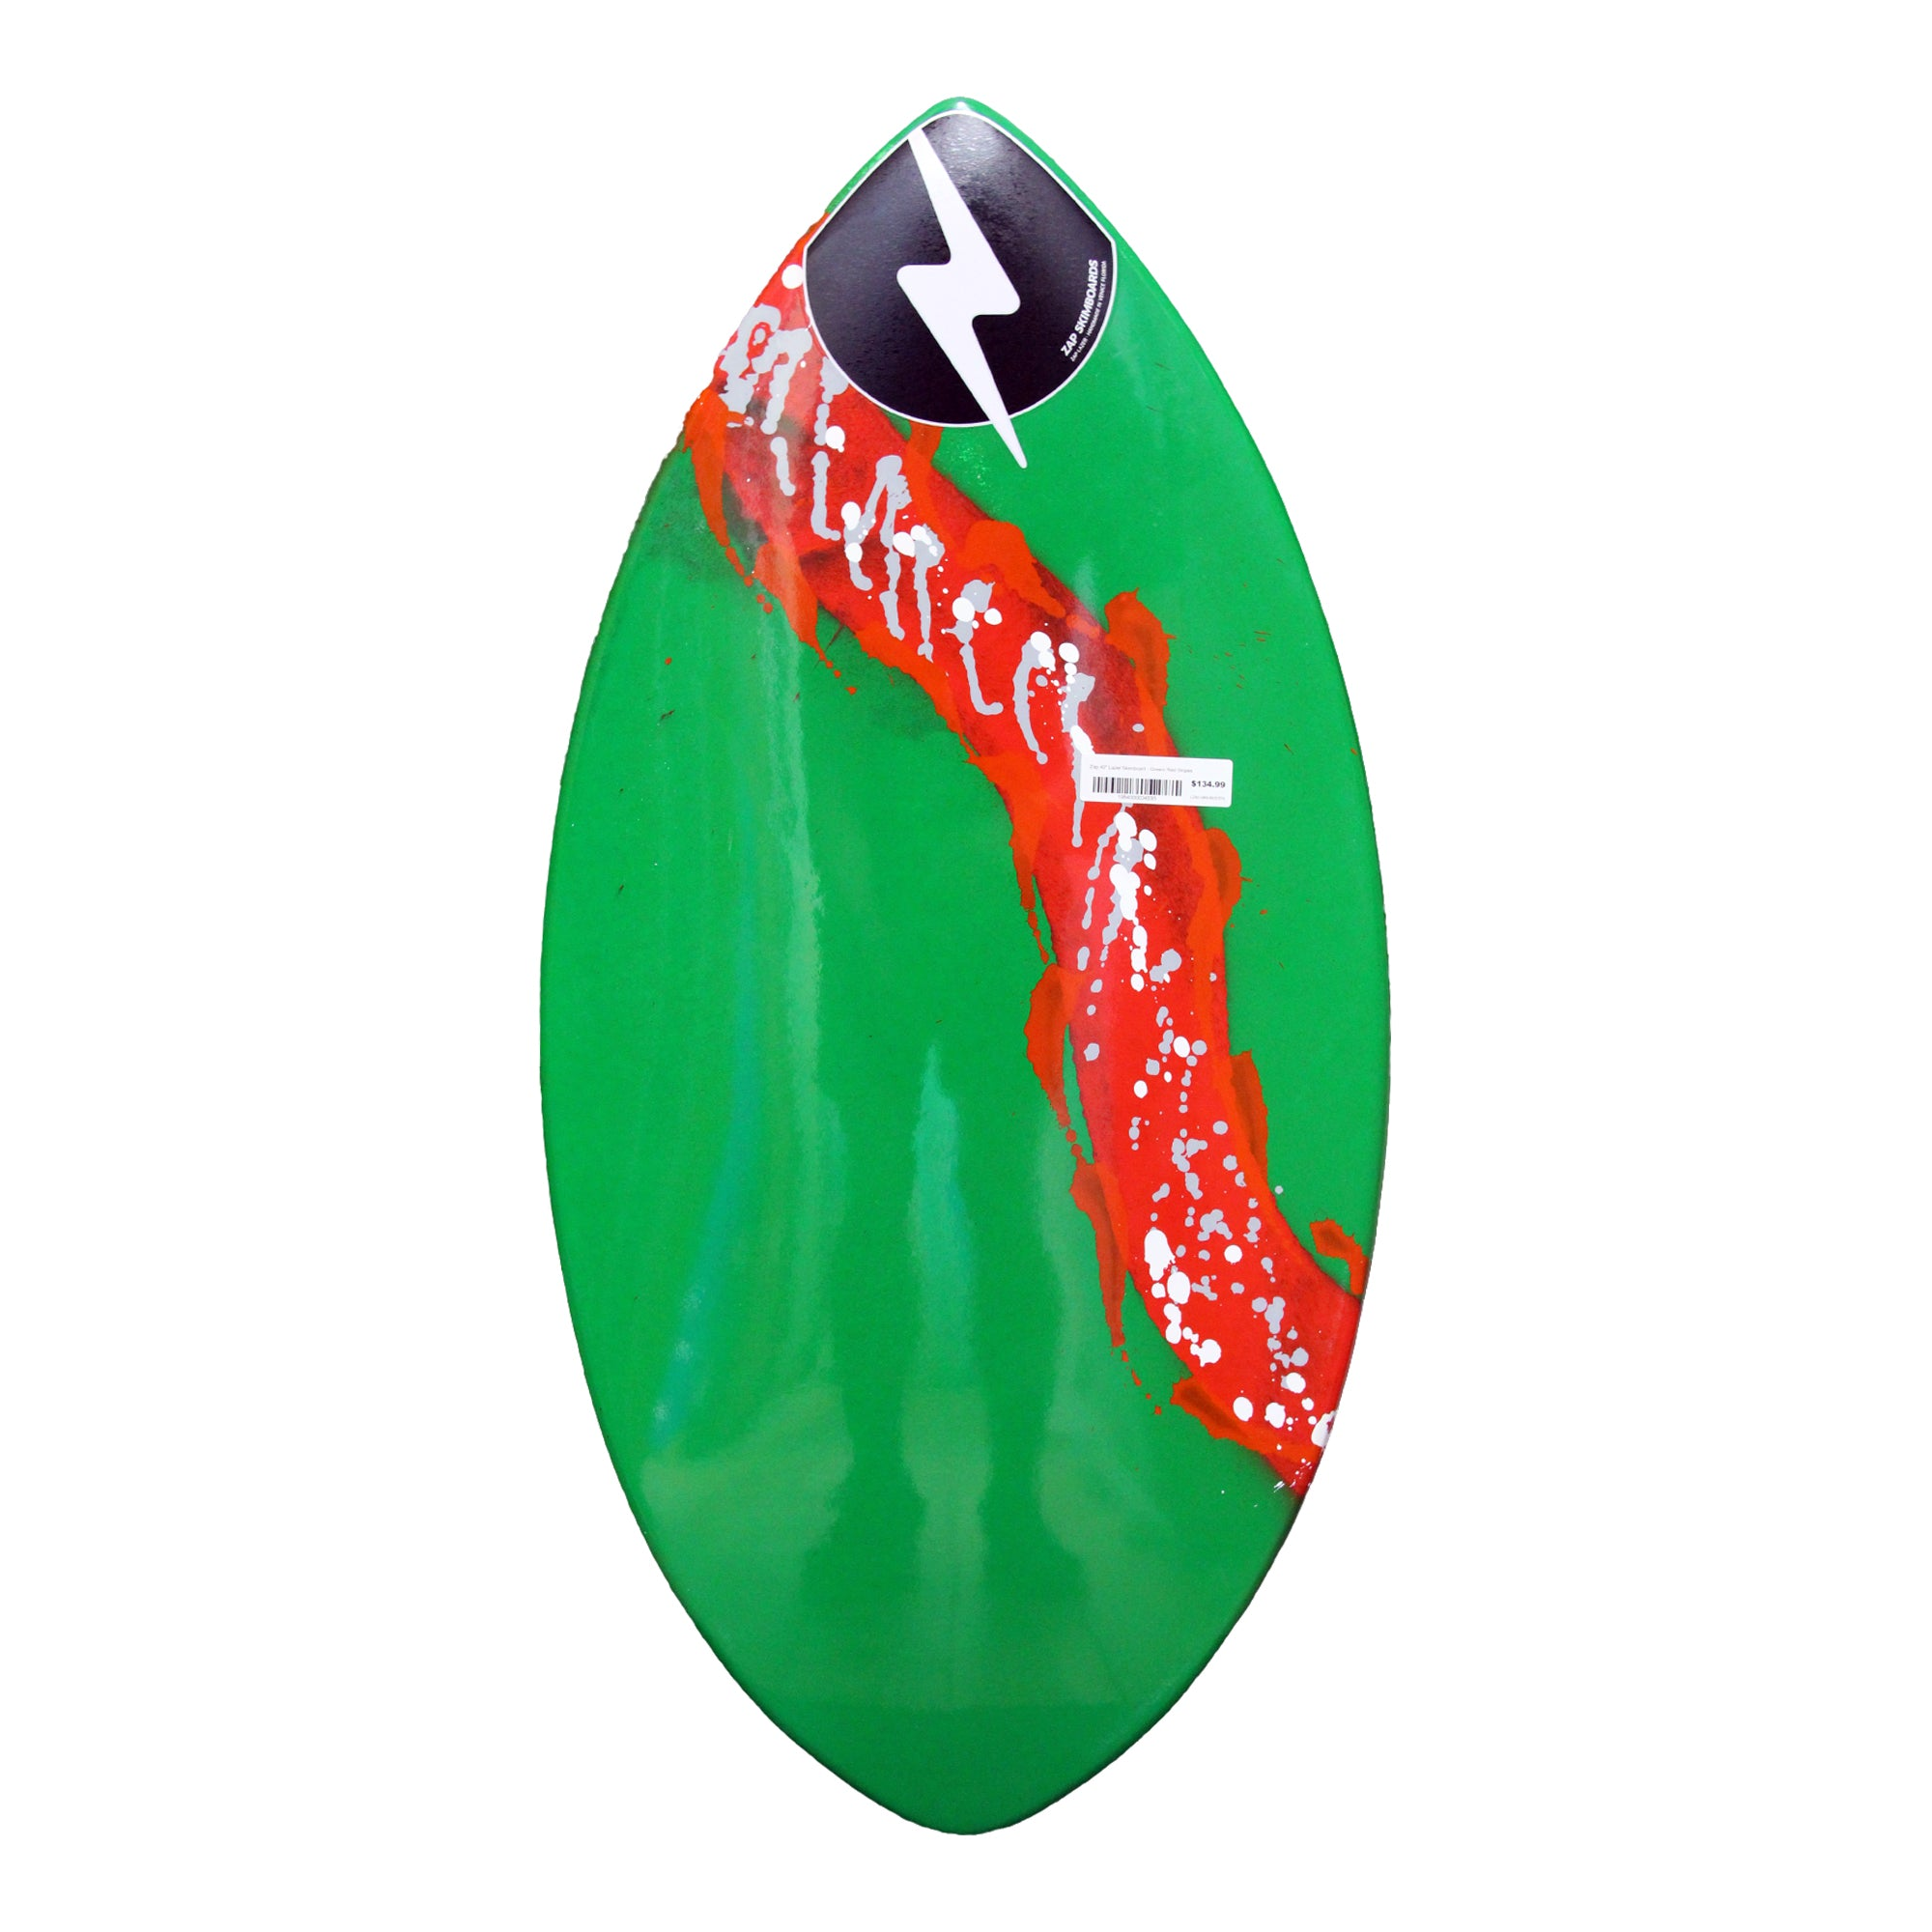 "Zap 40"" Lazer Skimboard - Green/Red Stripe"